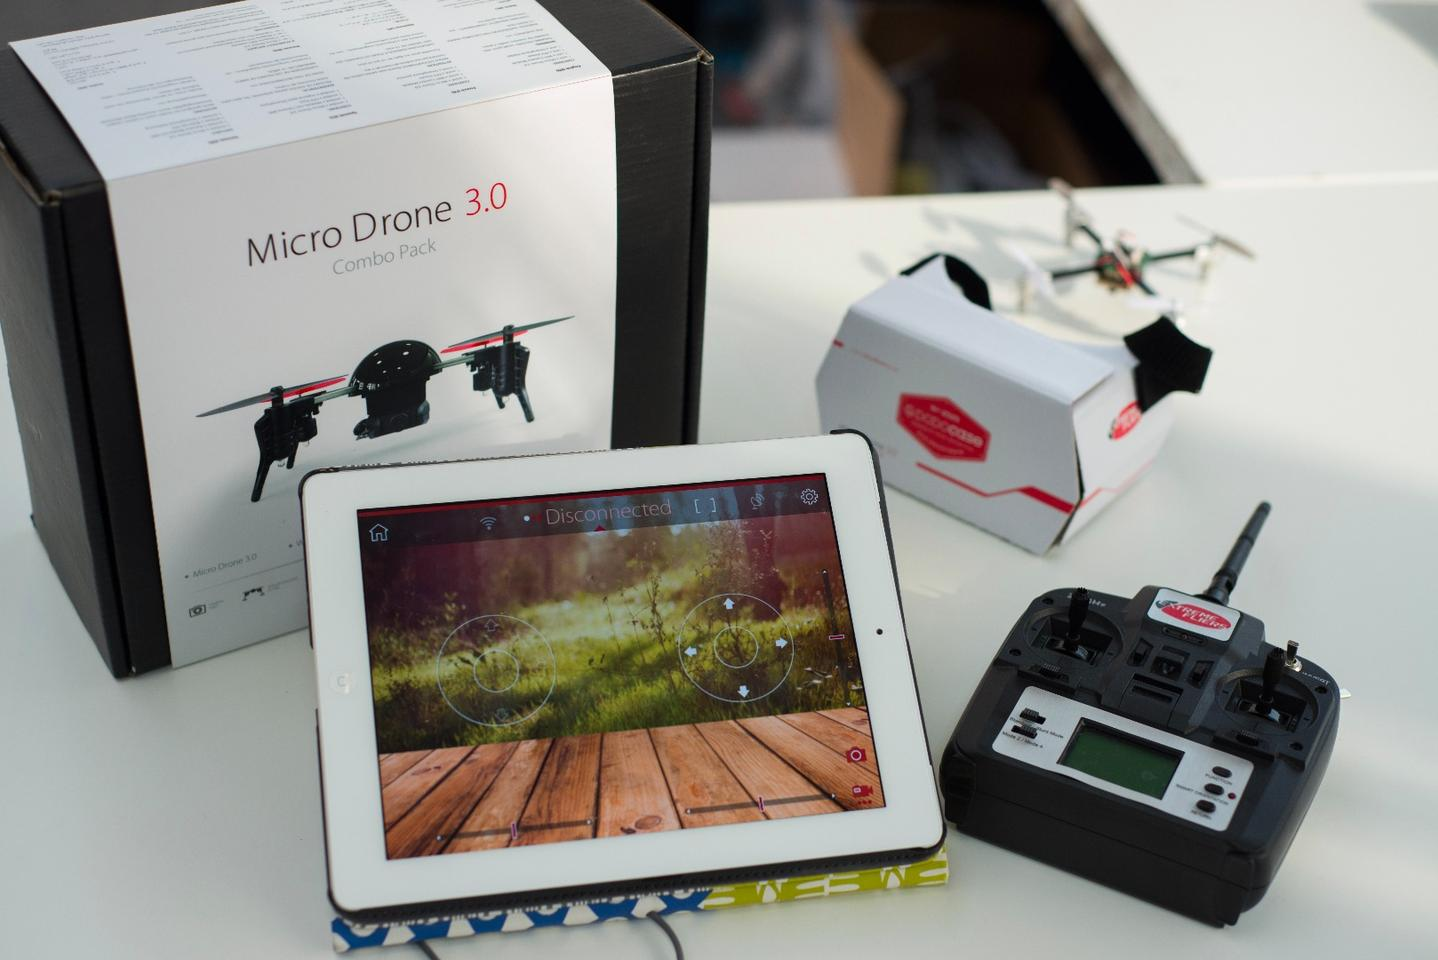 The Micro Drone 3.0 costs US$175 for the drone along with a HD camera module, VR headset, professional remote control, battery and charger